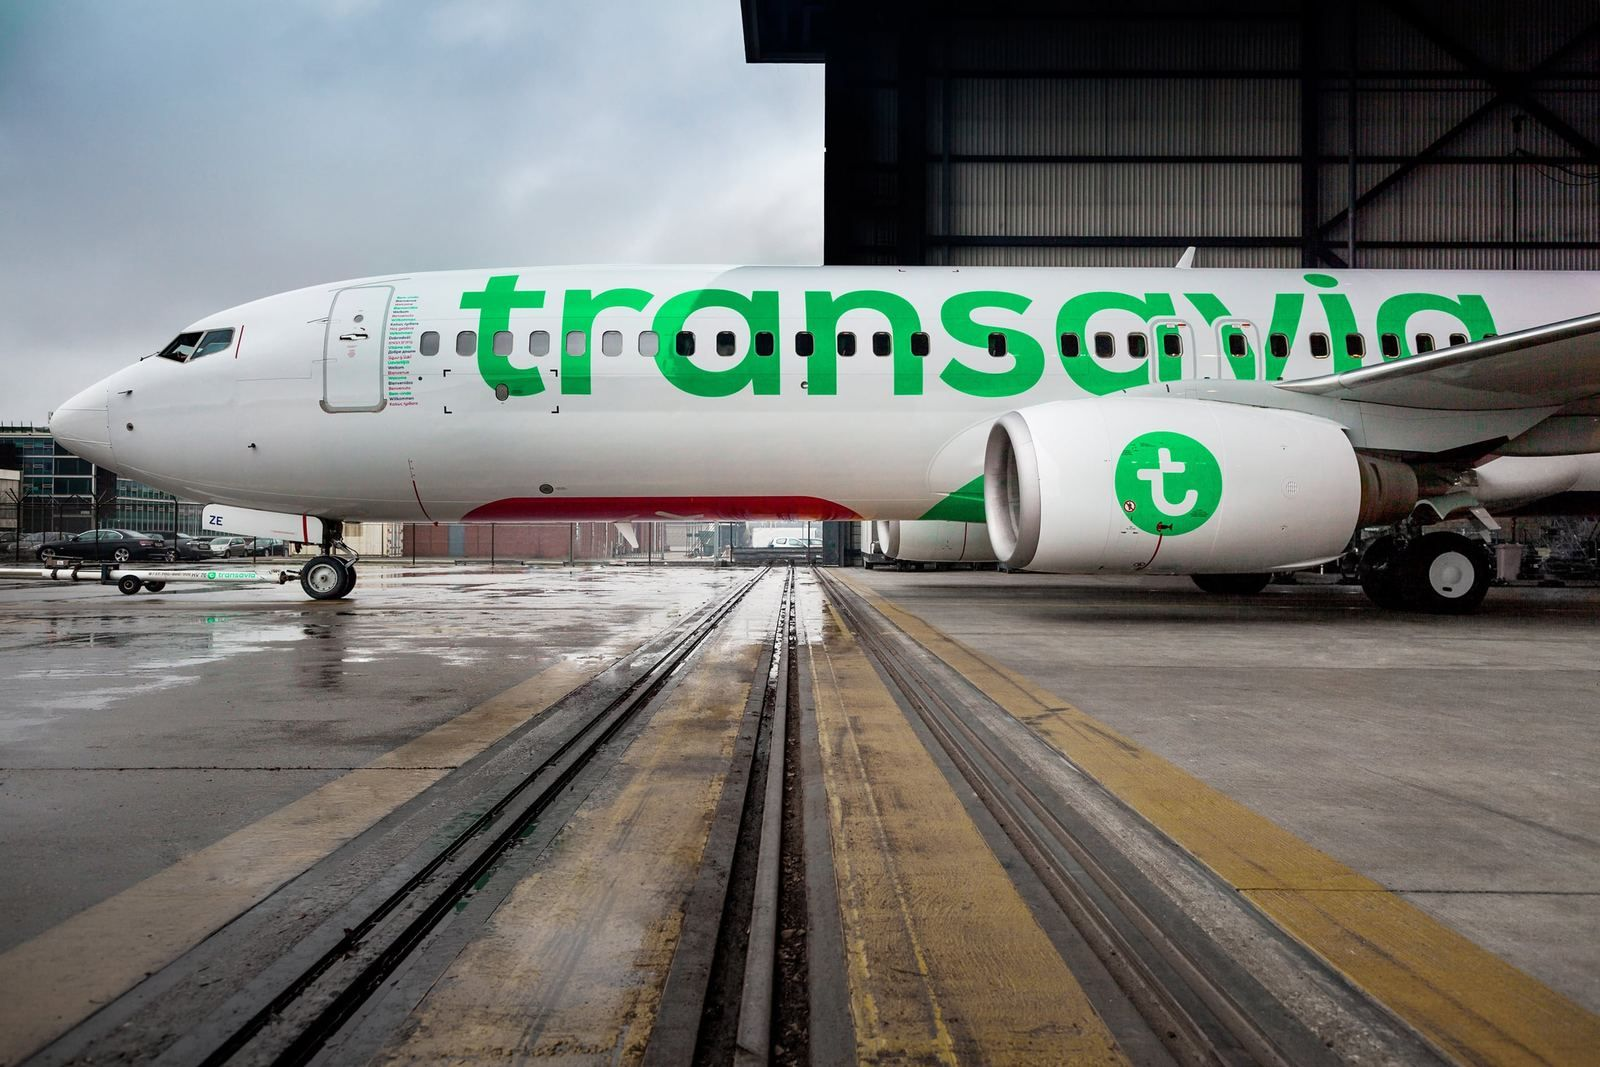 The rebranding of Transavia was prompted by Air FranceKLM